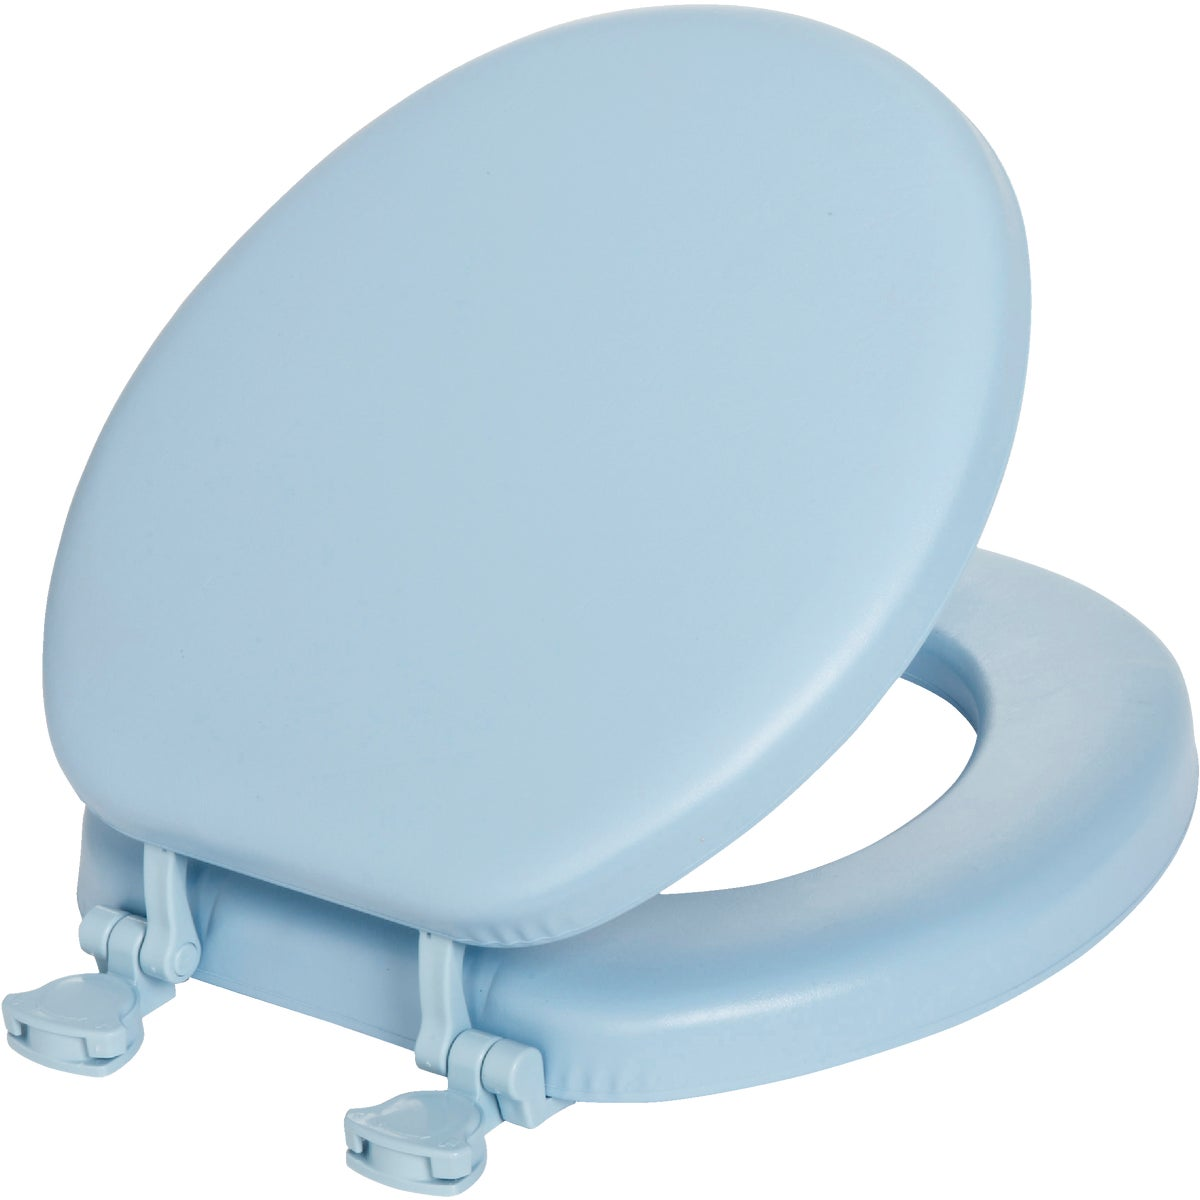 SKY BLUE SOFT ROUND SEAT - 13EC-034 by Bemis Mfg